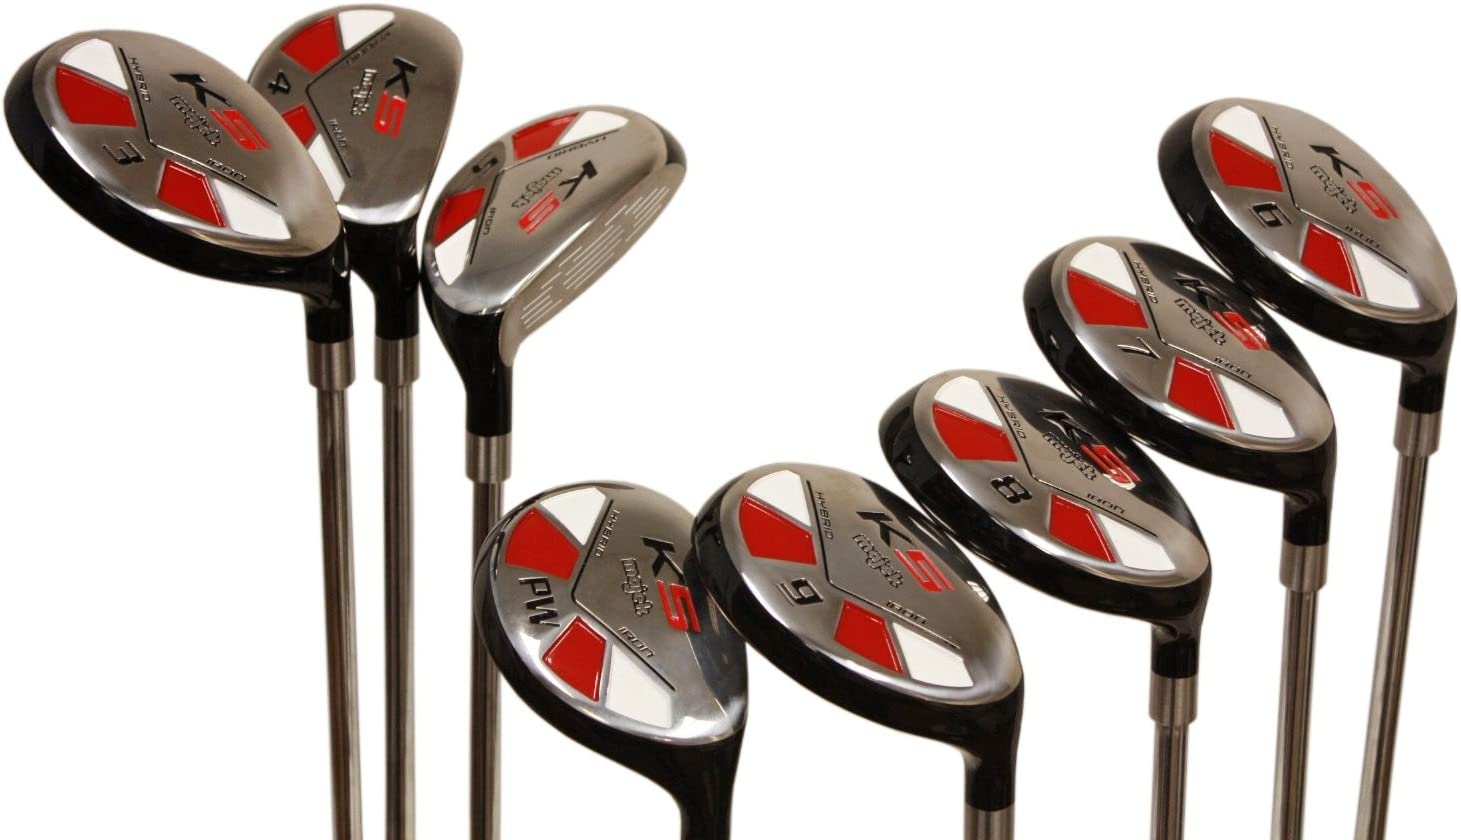 Tall Senior Golf Hybrids Big 1 Longer Than Standard Length Plus One Inch Longer Set All Complete Full Set, Which Includes 3, 4, 5, 6, 7, 8, 9, Pw Senior Flex Right Handed New Rescue Utility A Flex Club